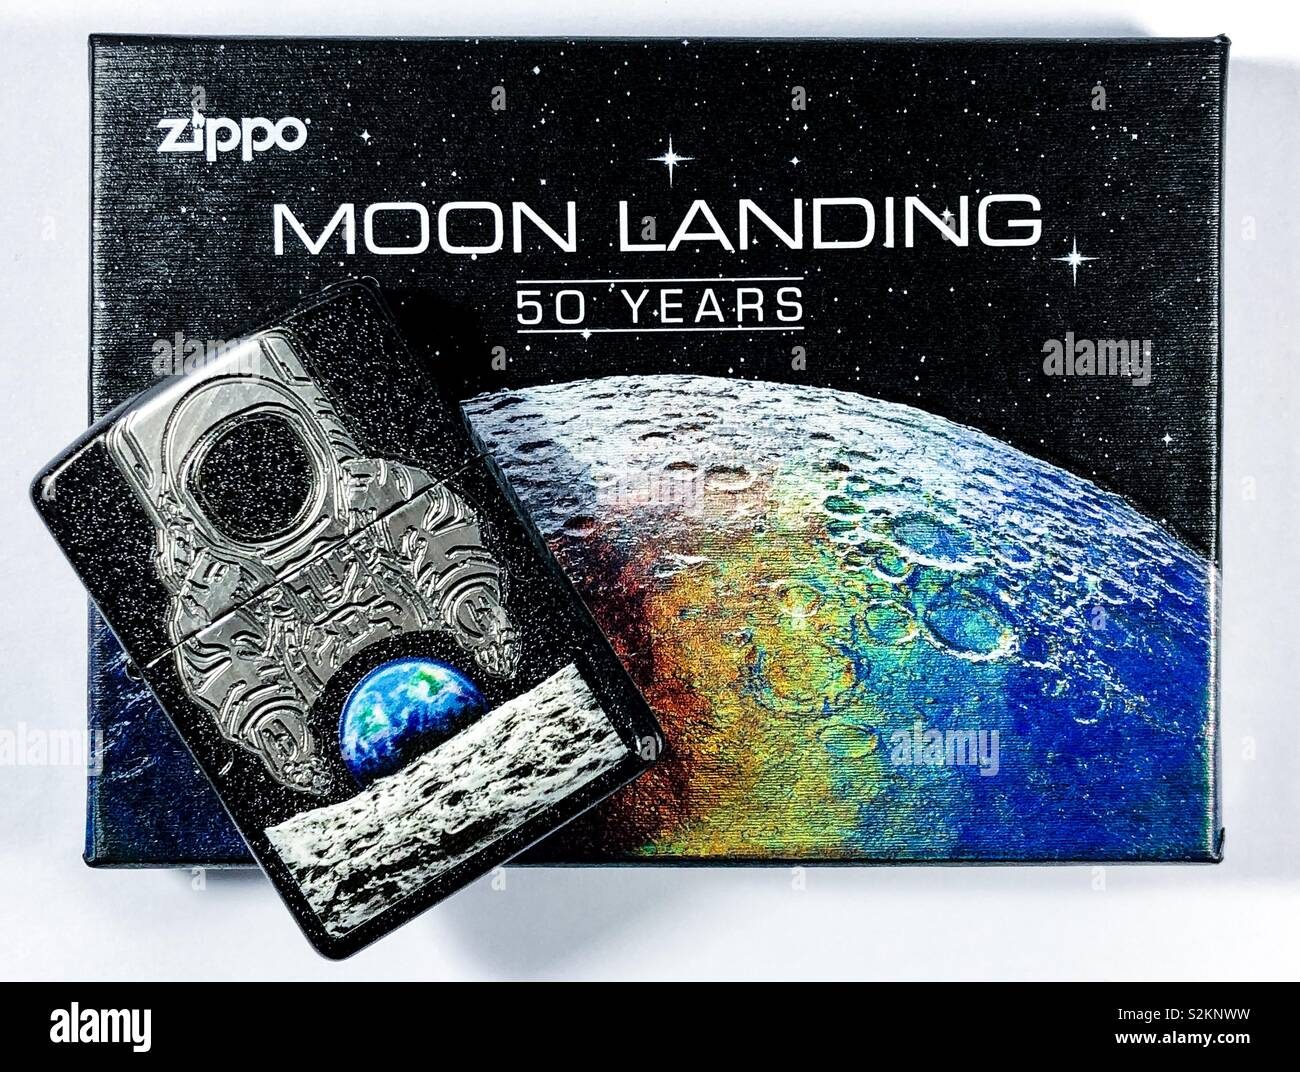 Zippo 50th anniversary moon landing limited edition lighter. - Stock Image